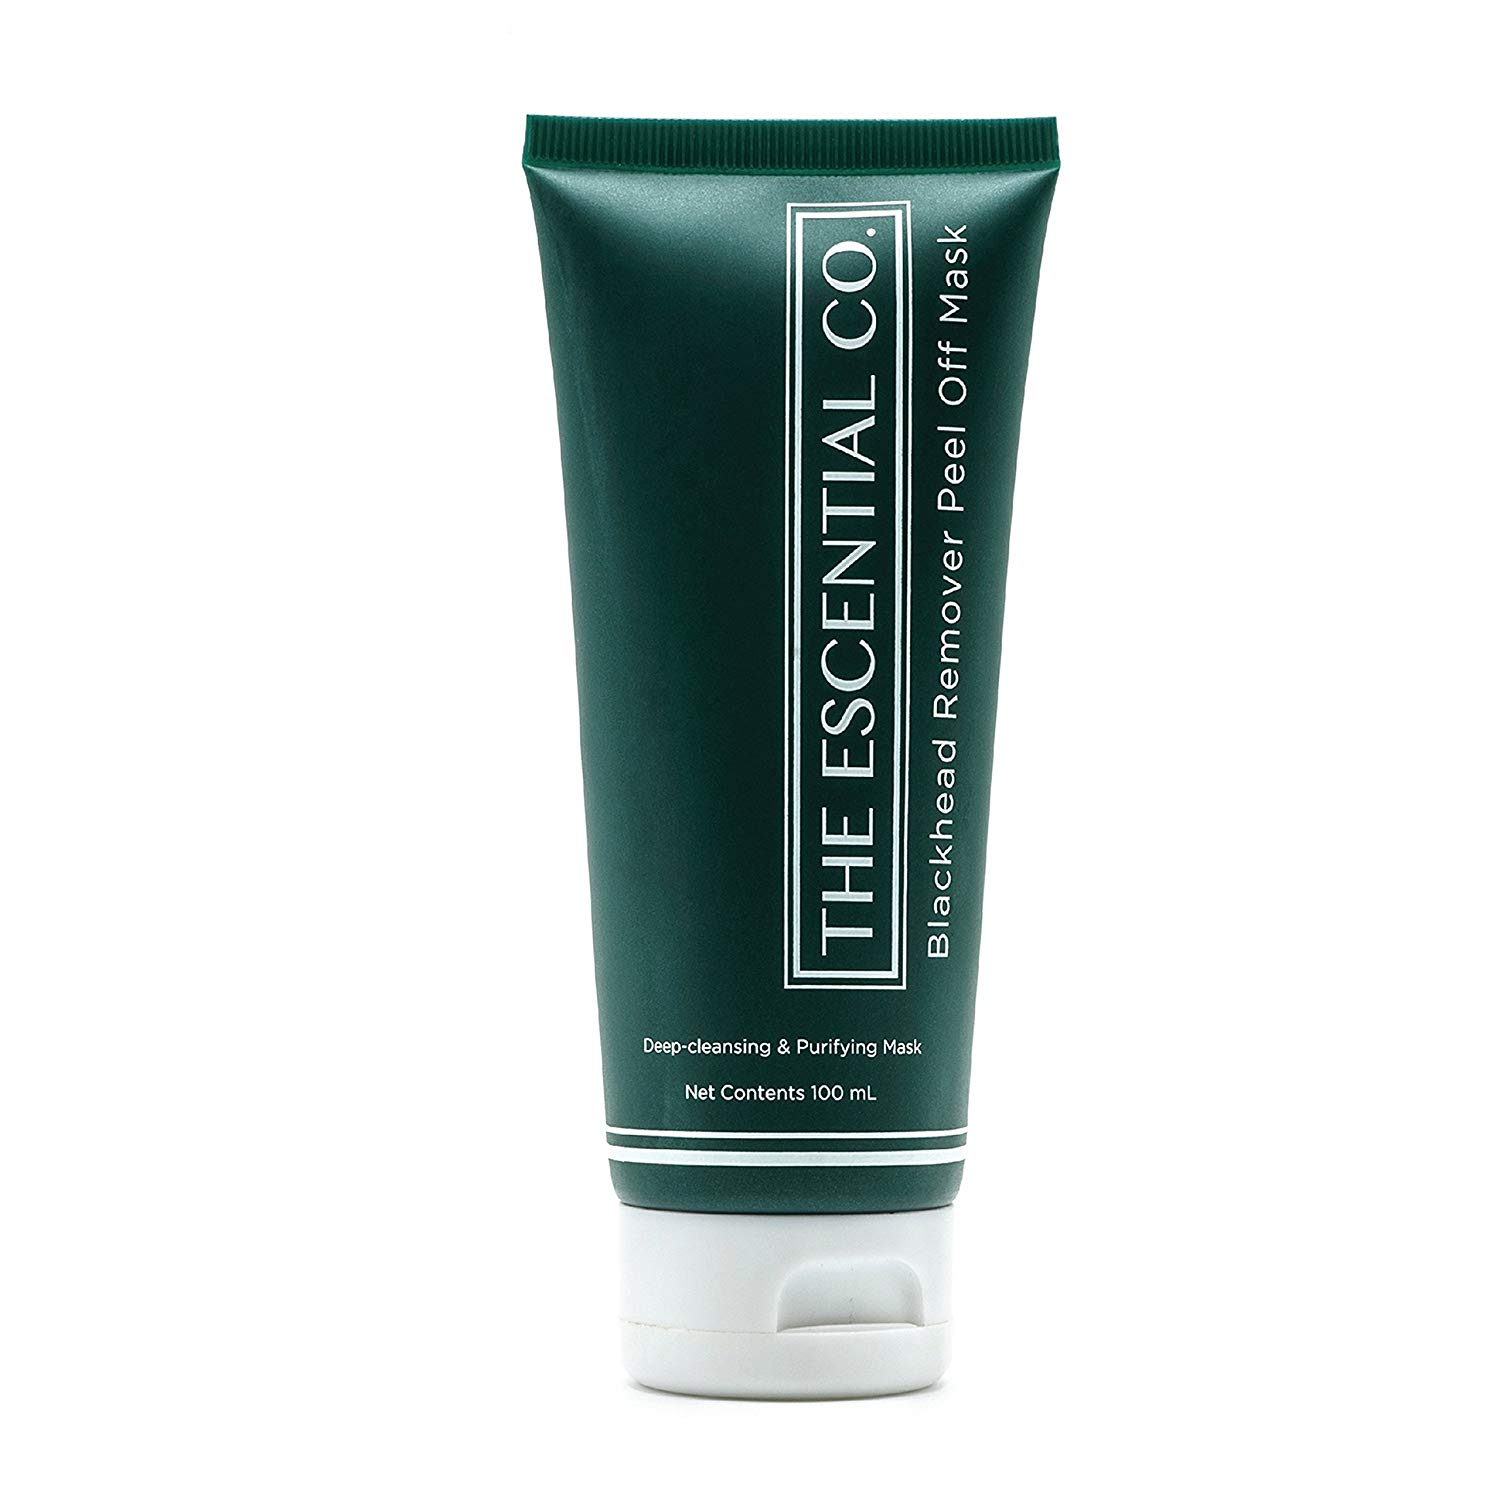 The Escential Co. Blackhead Remover Peel Off Charcoal Mask